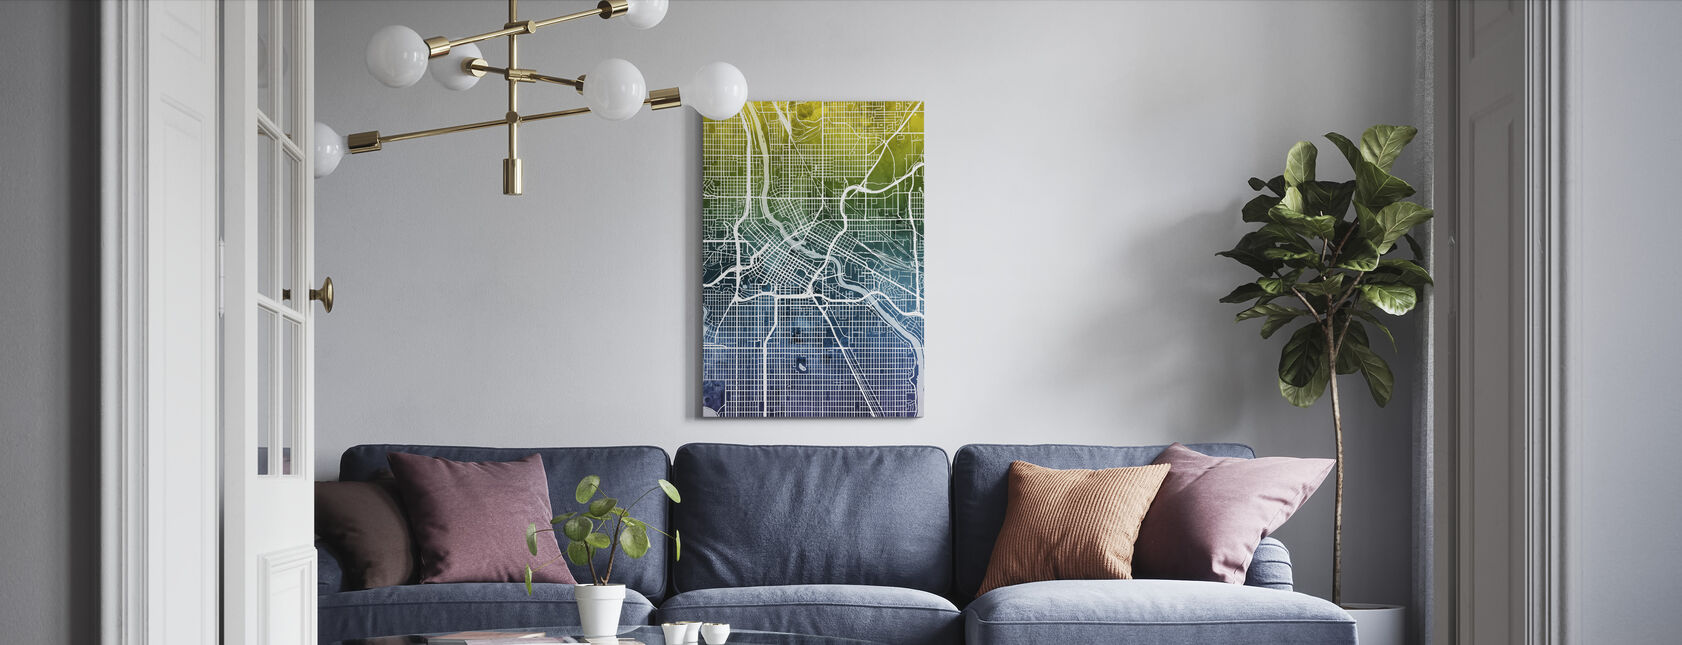 Minneapolis Minnesota City Kaart - Canvas print - Woonkamer